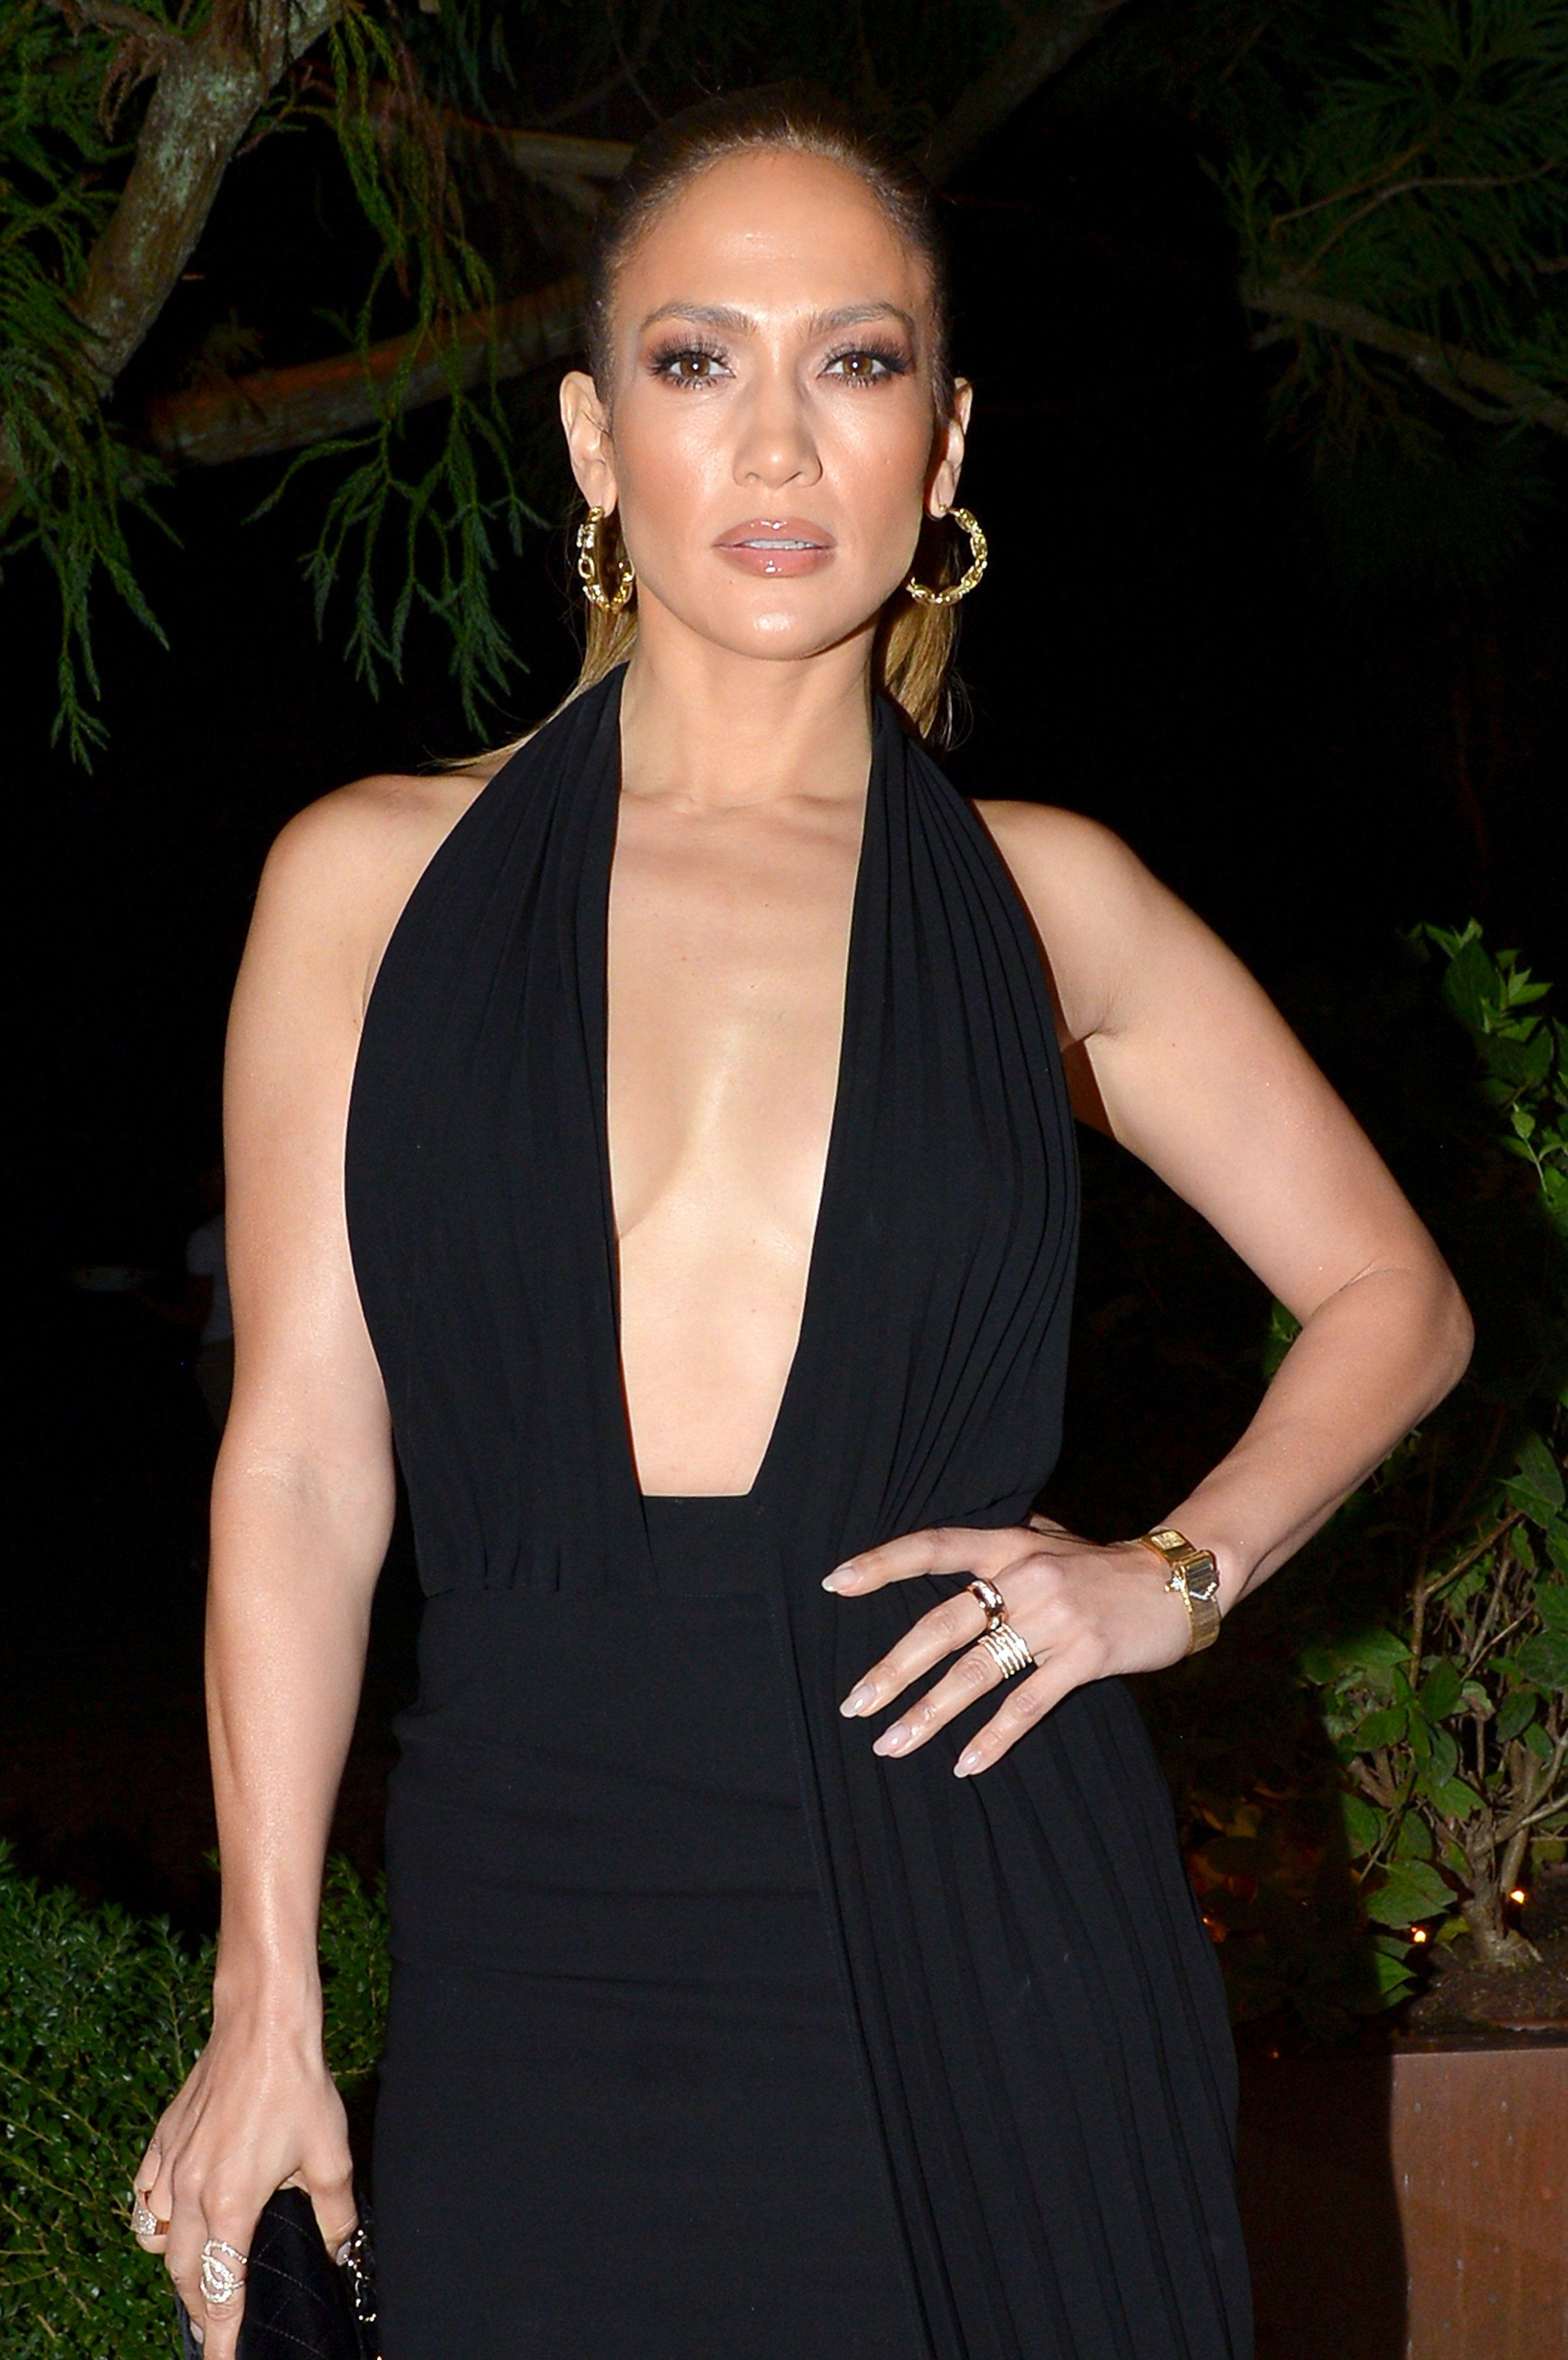 EAST HAMPTON, NY - AUGUST 20:  Jennifer Lopez attends the Apollo in the Hamptons 2016 party at The Creeks on August 20, 2016 in East Hampton, New York.  (Photo by Patrick McMullan/Patrick McMullan via Getty Images)